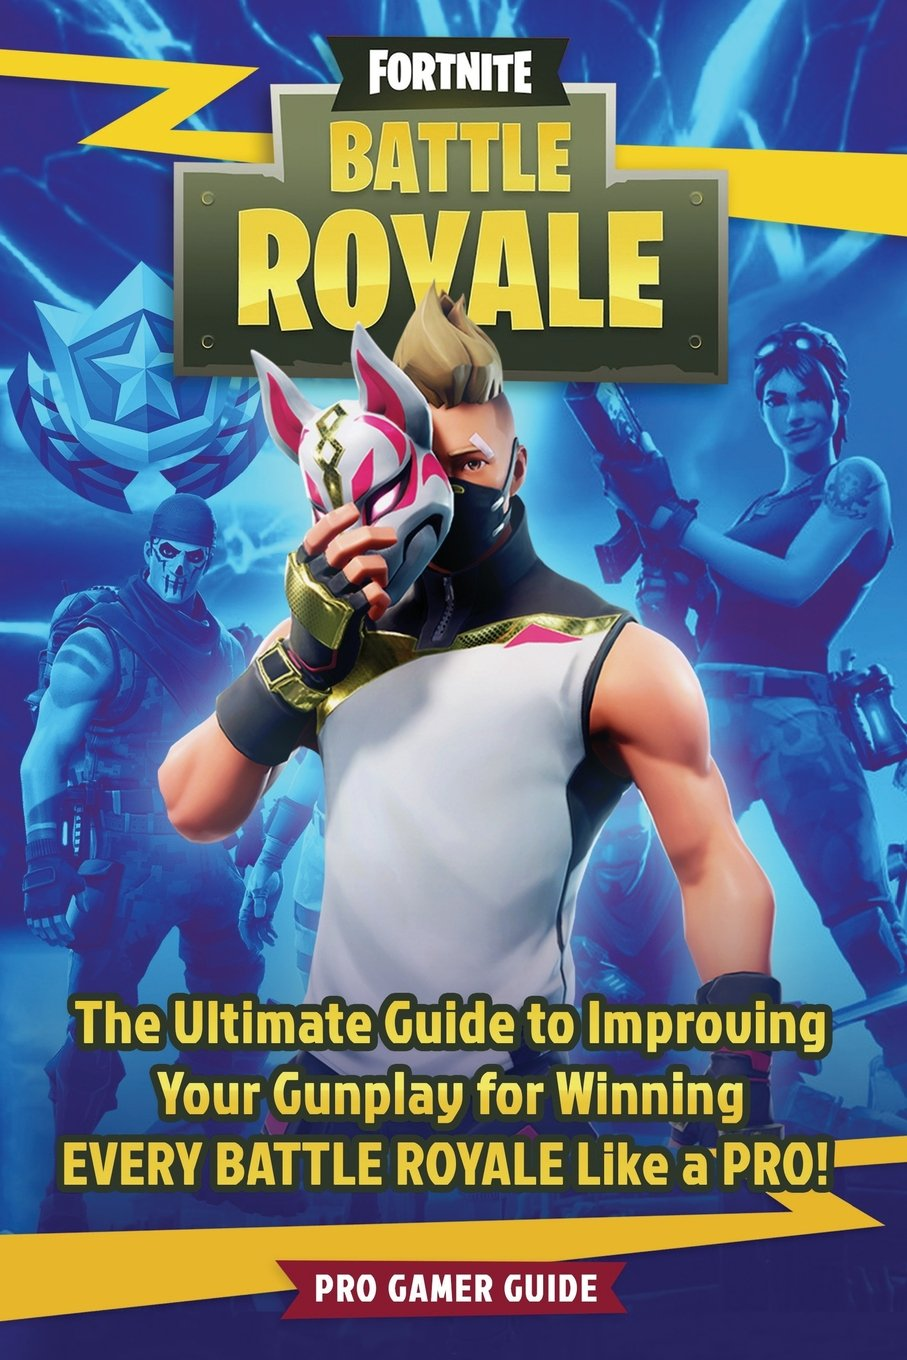 Fortnite Battle Royale The Ultimate Guide To Improving Your